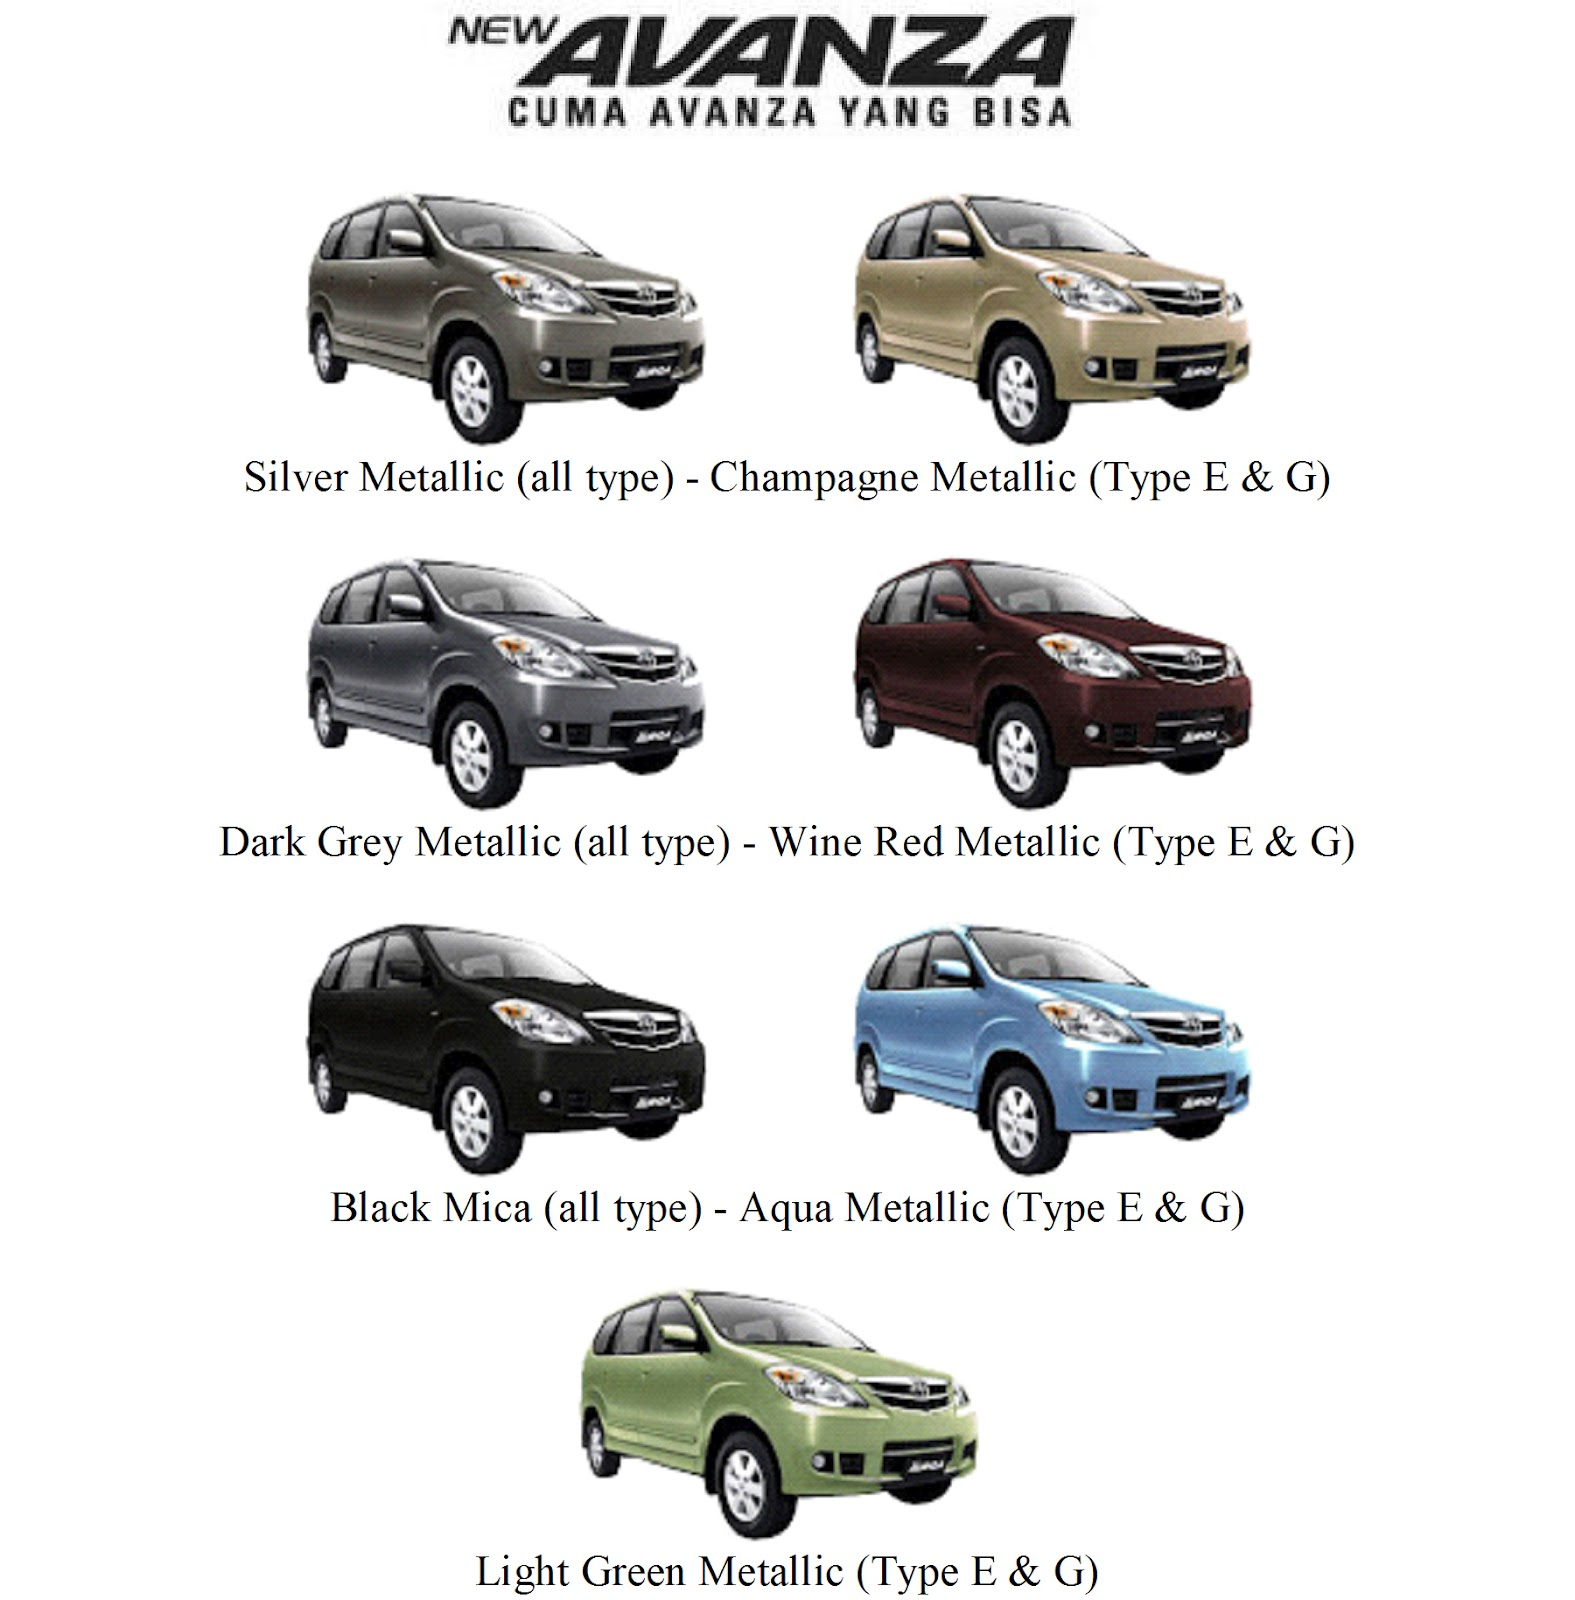 Grand New Avanza Warna Grey Metallic Cara Reset Ecu Harga Toyota All E Ottomania86 Berbagi Informasi 2012 Banjarmasin Kalimantan